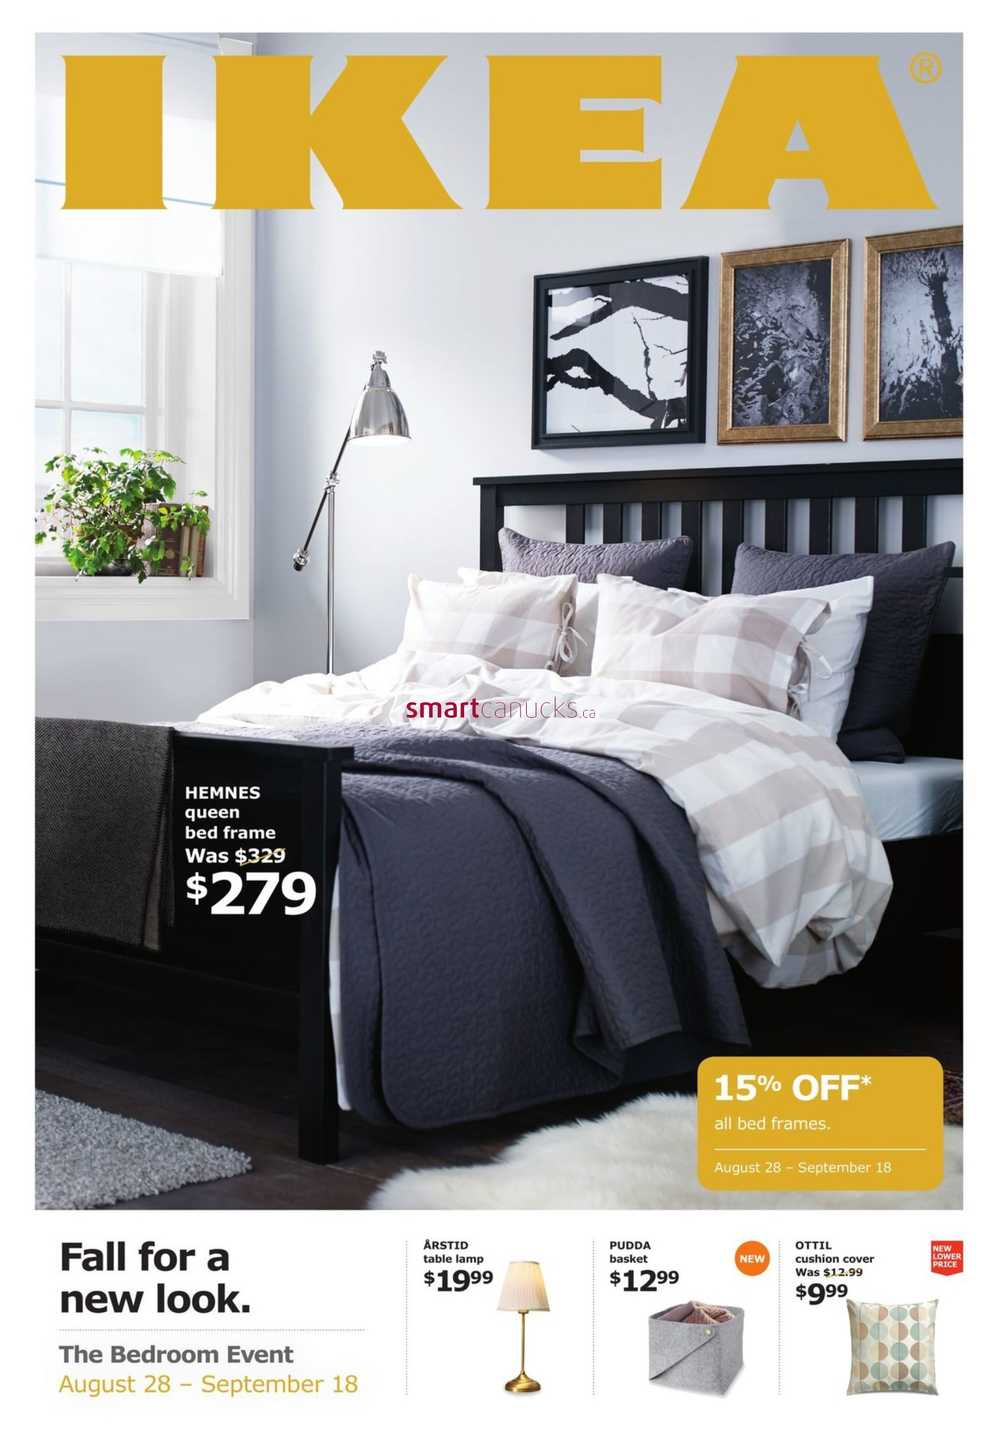 Ikea Bed Frames Event Flyer August 8 to September 8